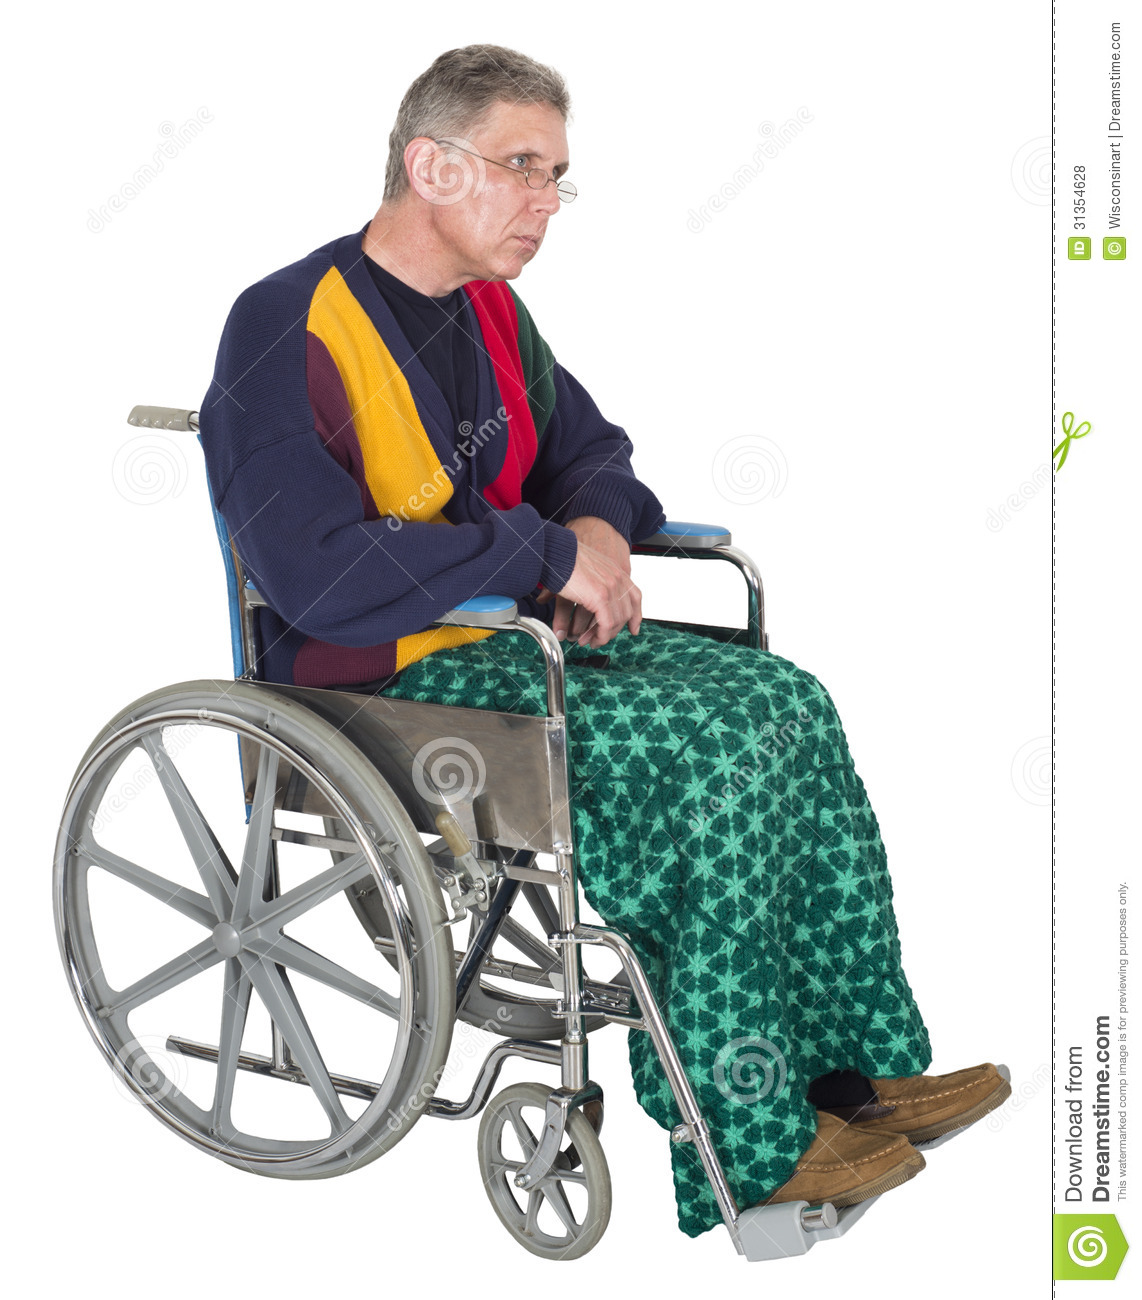 wheelchair man la z boy office chair sad lonely senior elderly isolated stock photo a sits in on white